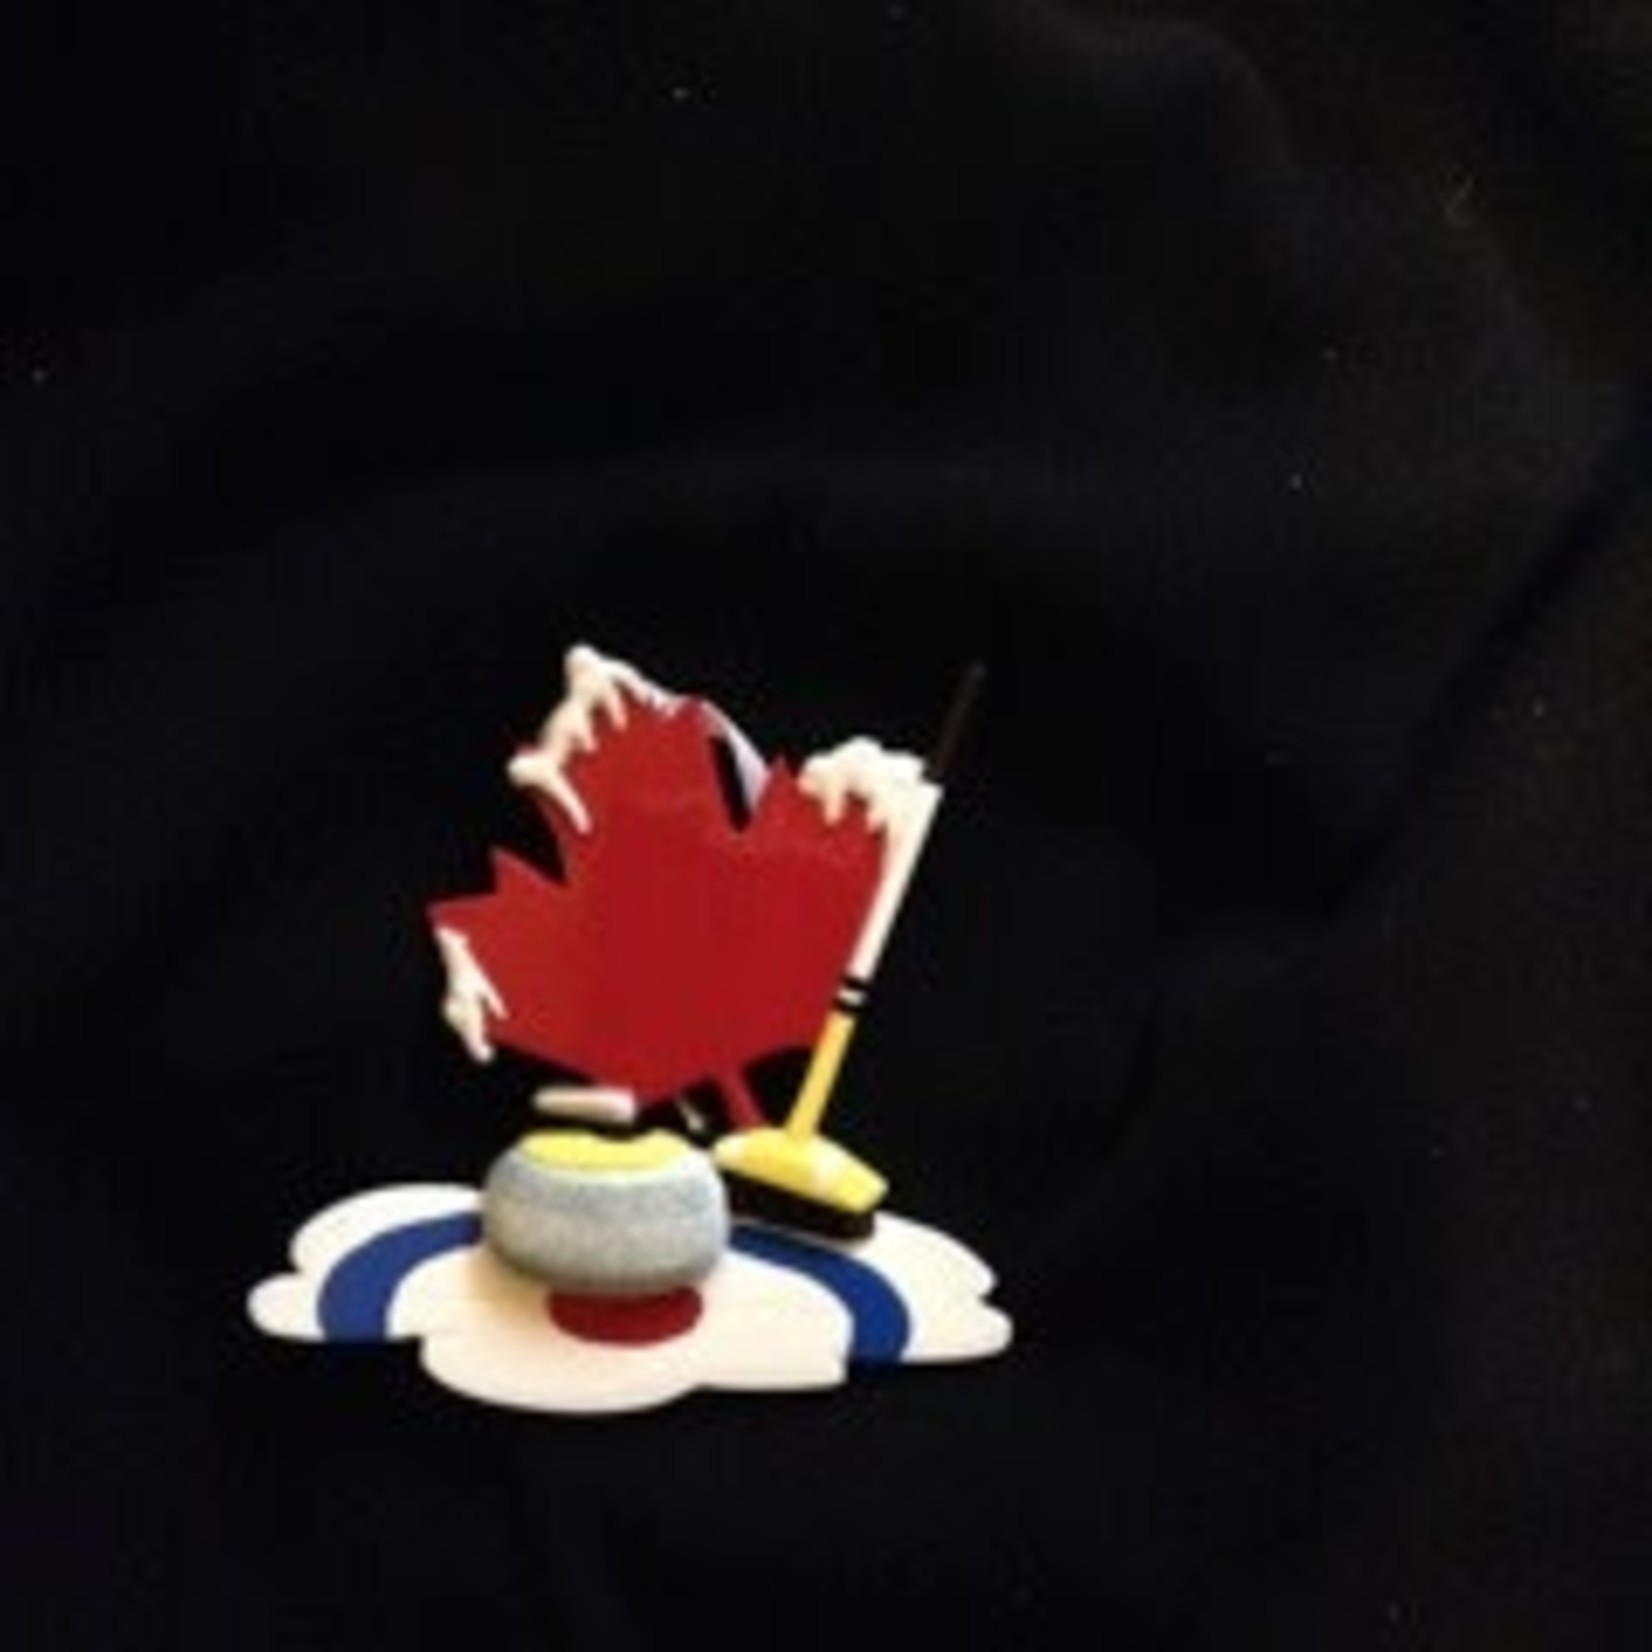 Canadian Curling Orn